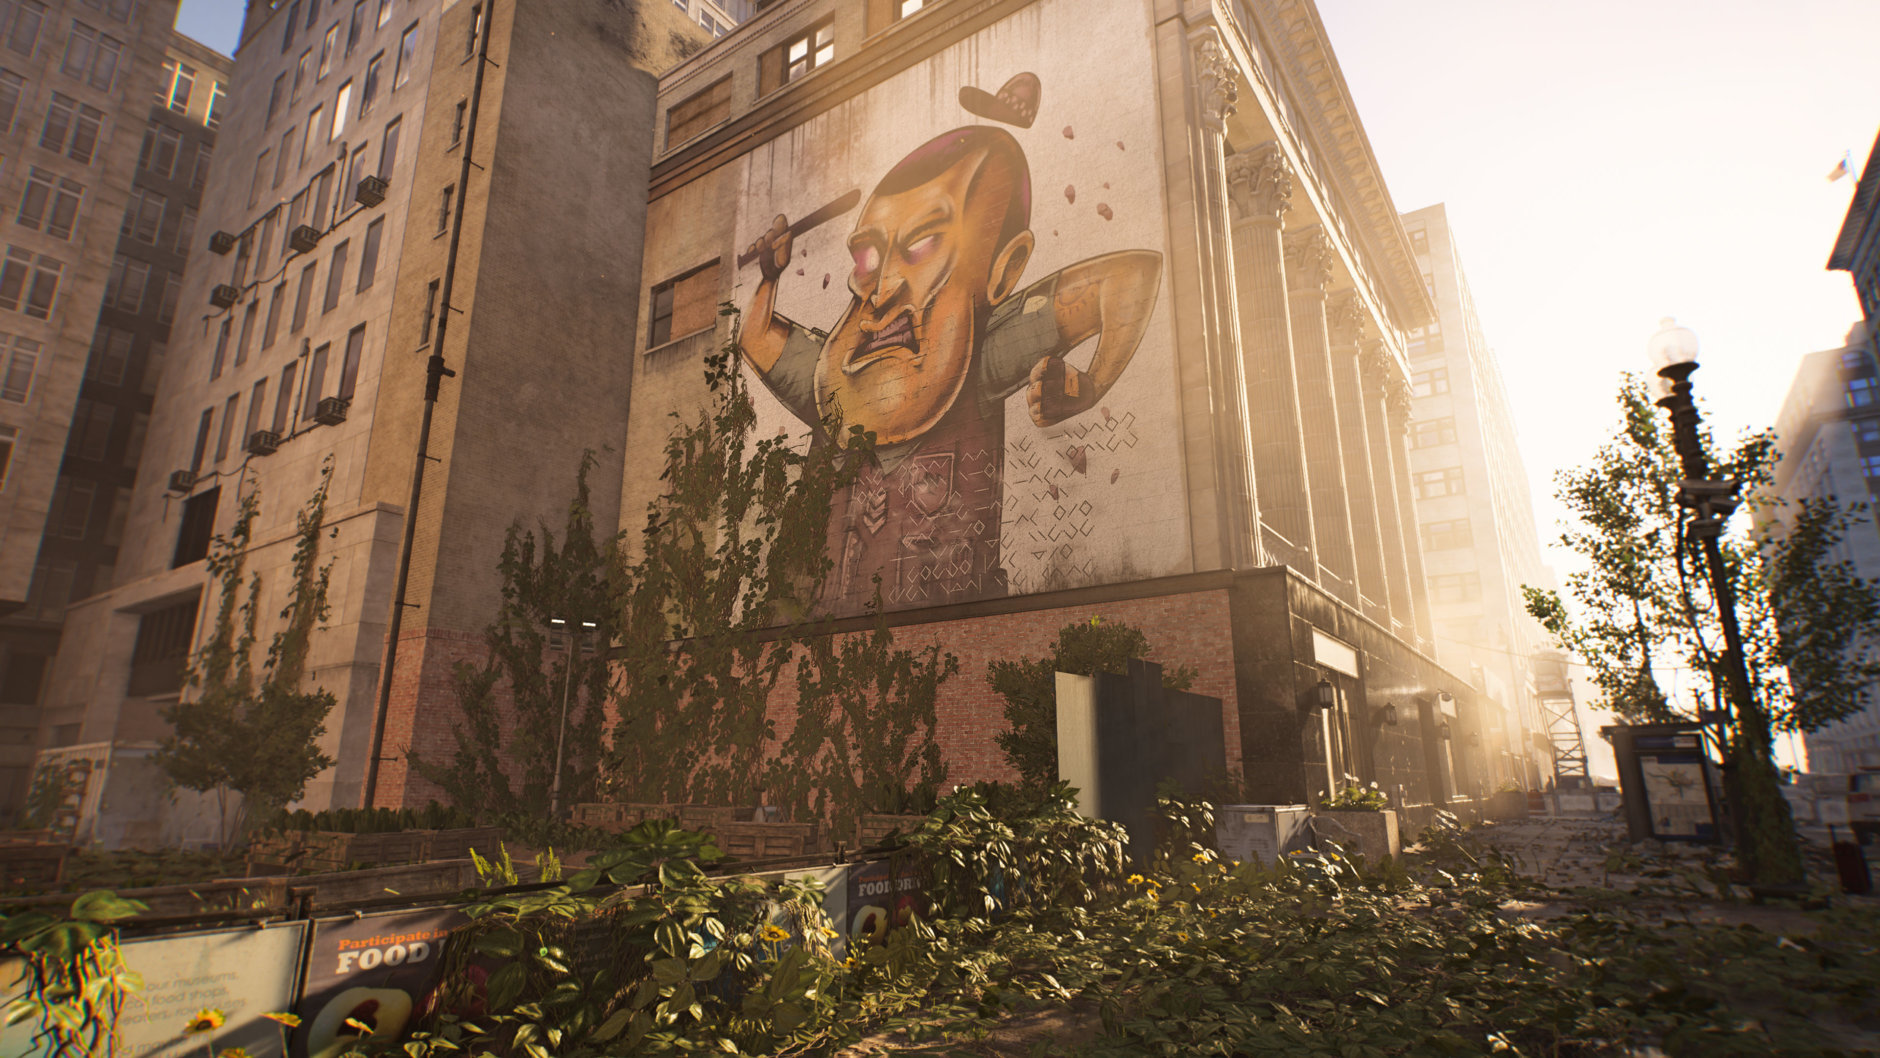 Graffiti is all over the streets of D.C. in Division 2. (Courtesy Ubisoft/Massive)